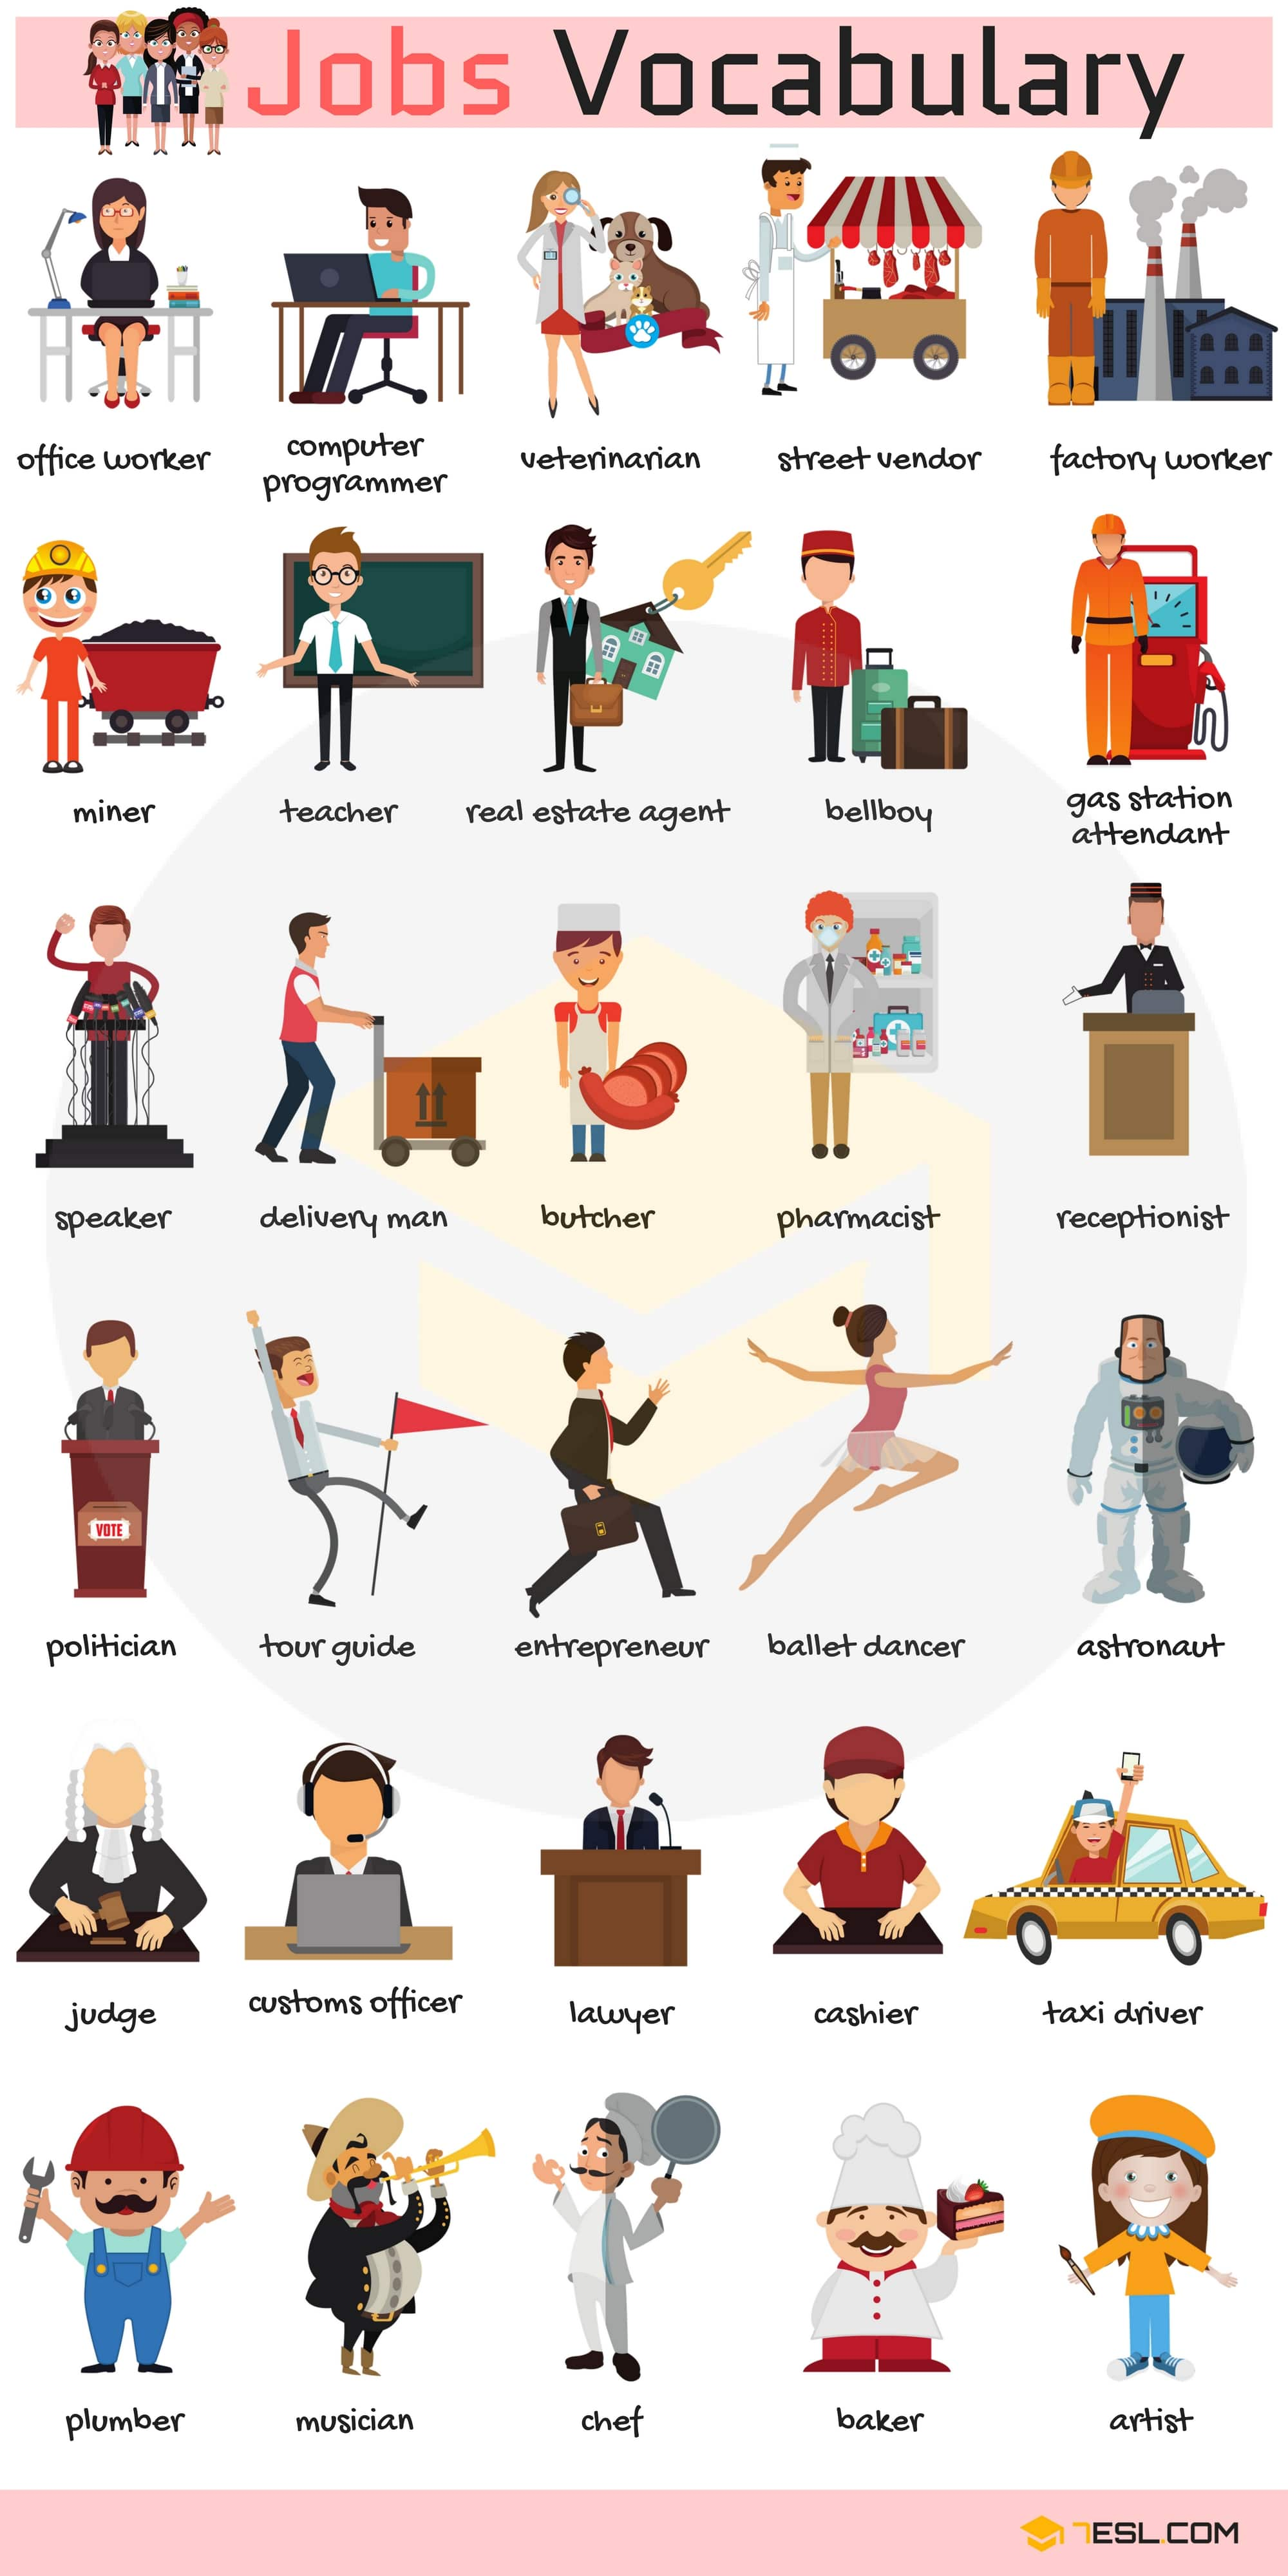 Learn Jobs And Occupations Vocabulary Through Pictures